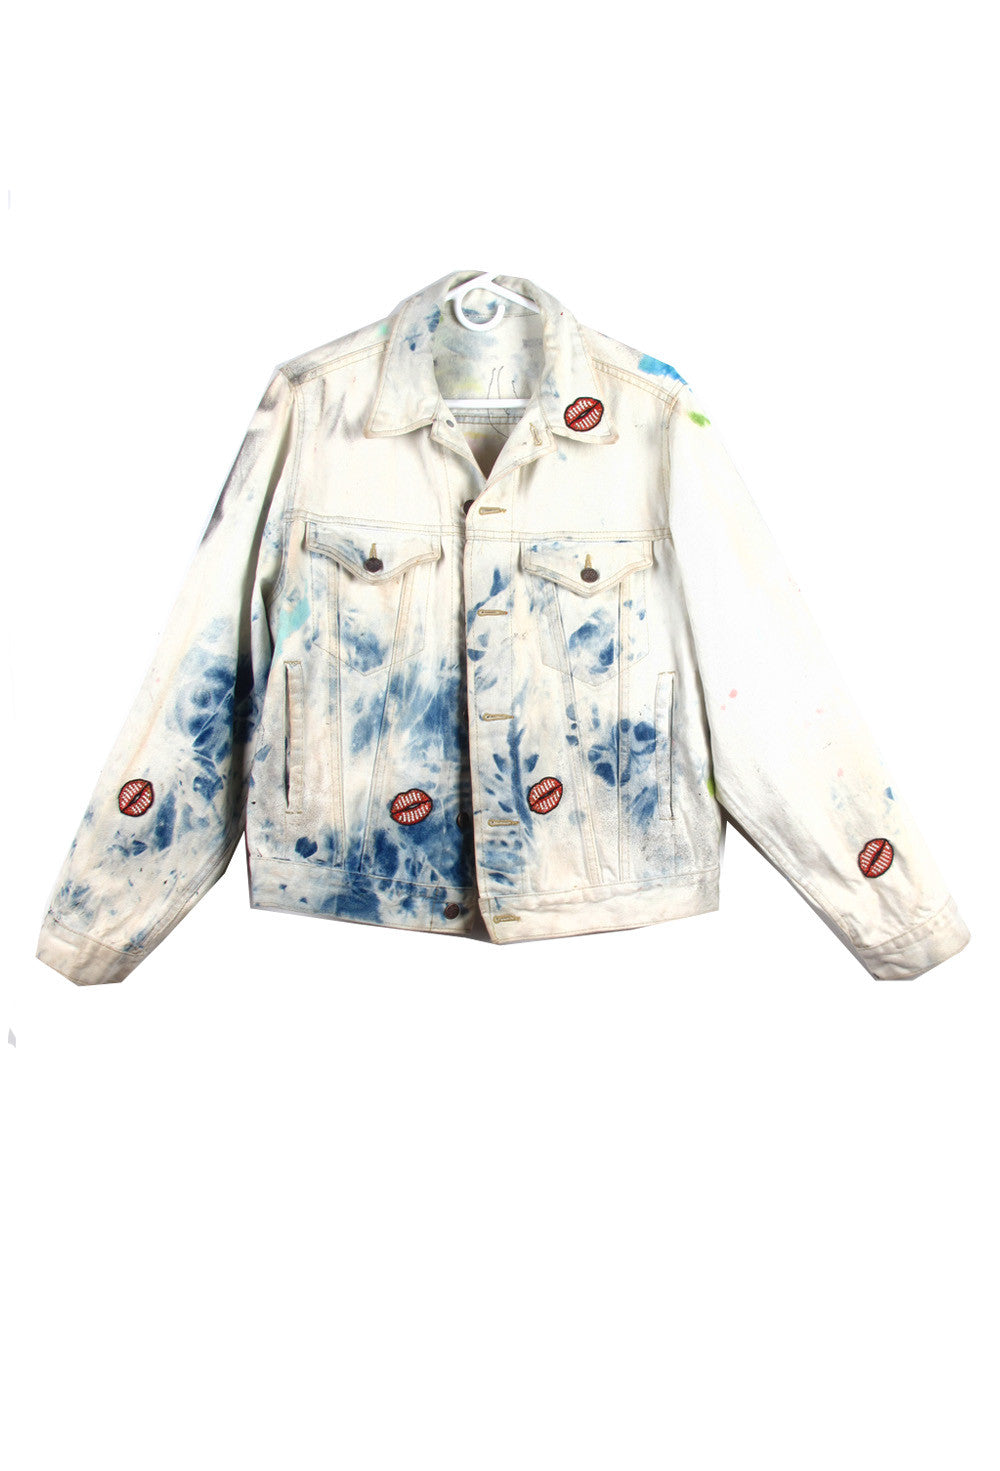 Scooter LaForge One of a Kind 'Sequin MARILN MONROE' Denim Jacket- IMMEDIATE DELIVERY SIZE L/ XL